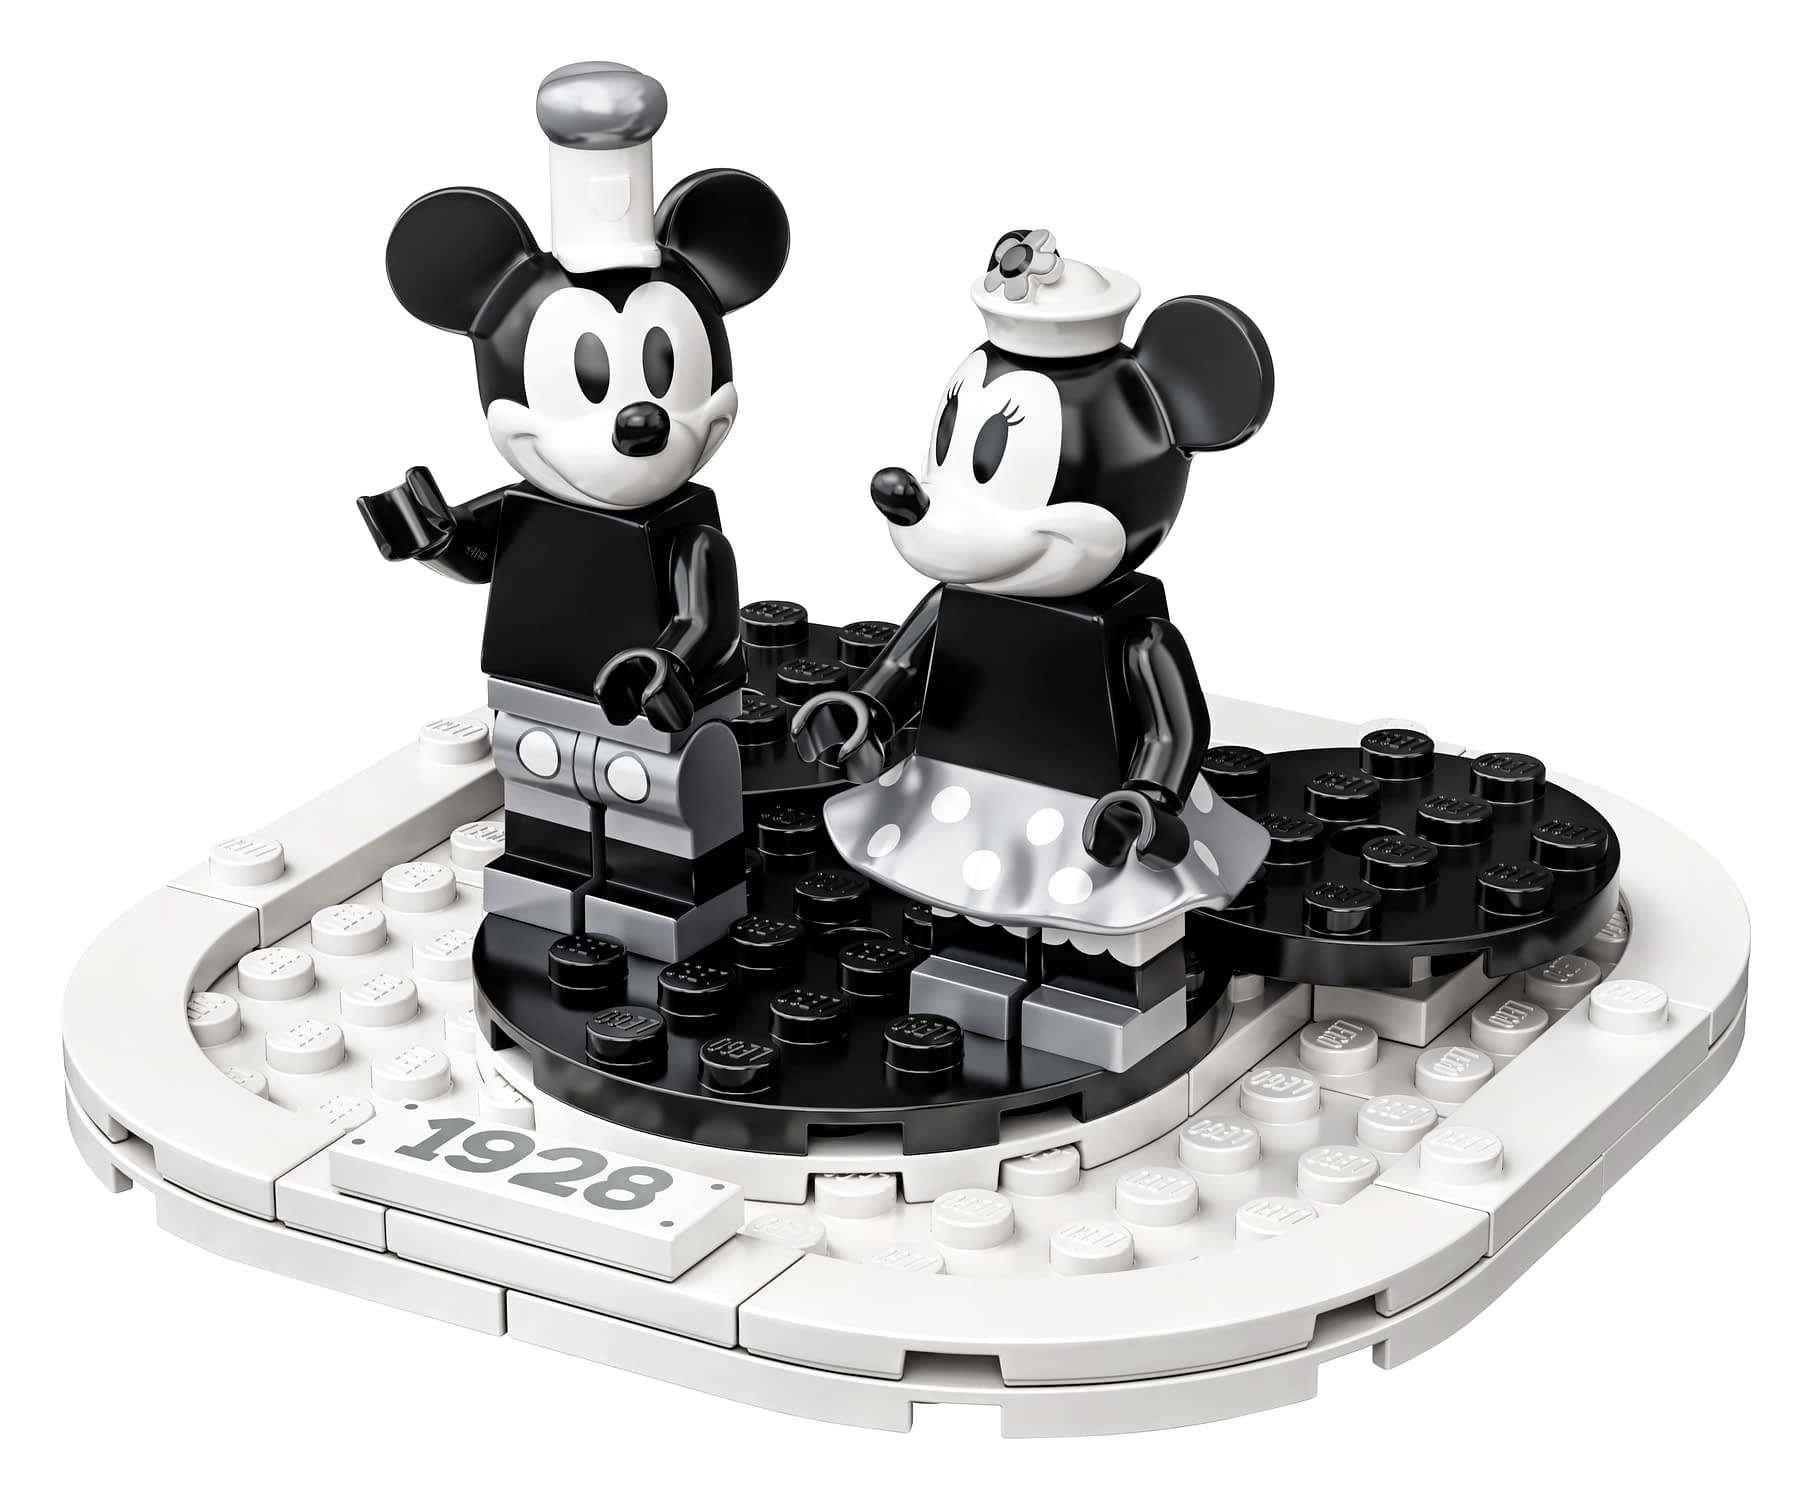 LEGO Ideas Steamboat Willie Mickey and Minnie Mouse Set 5